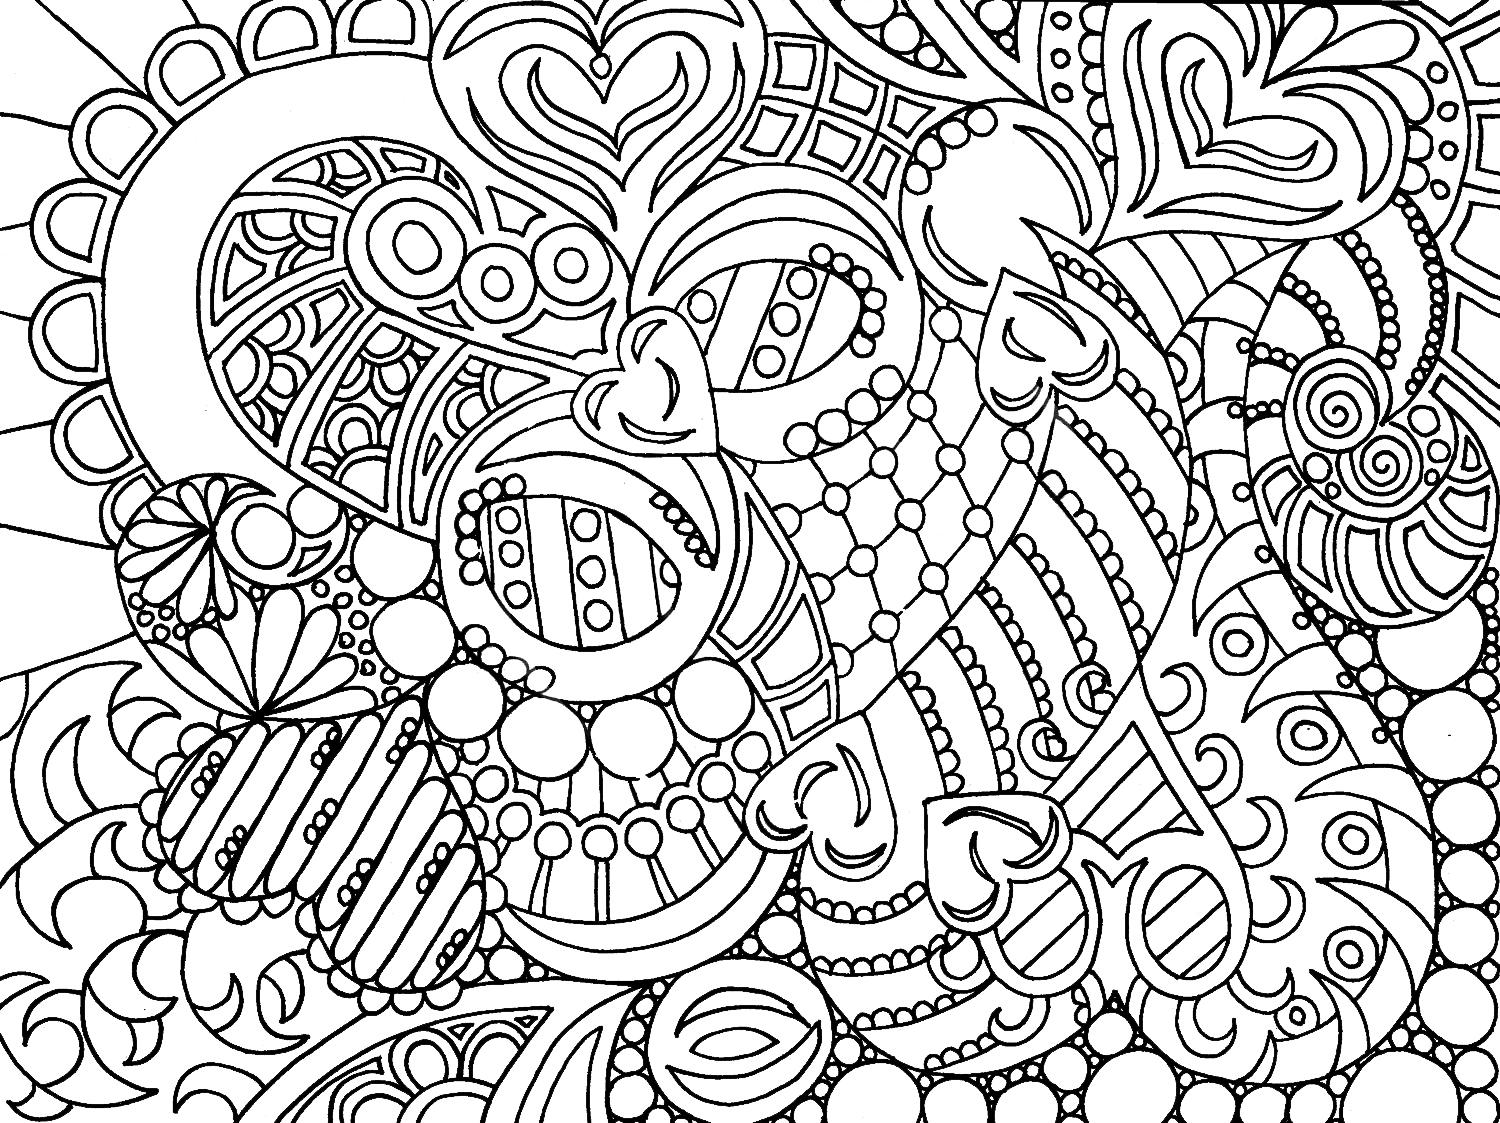 Coloring Pages Spectacular For Grown Ups Full Inside